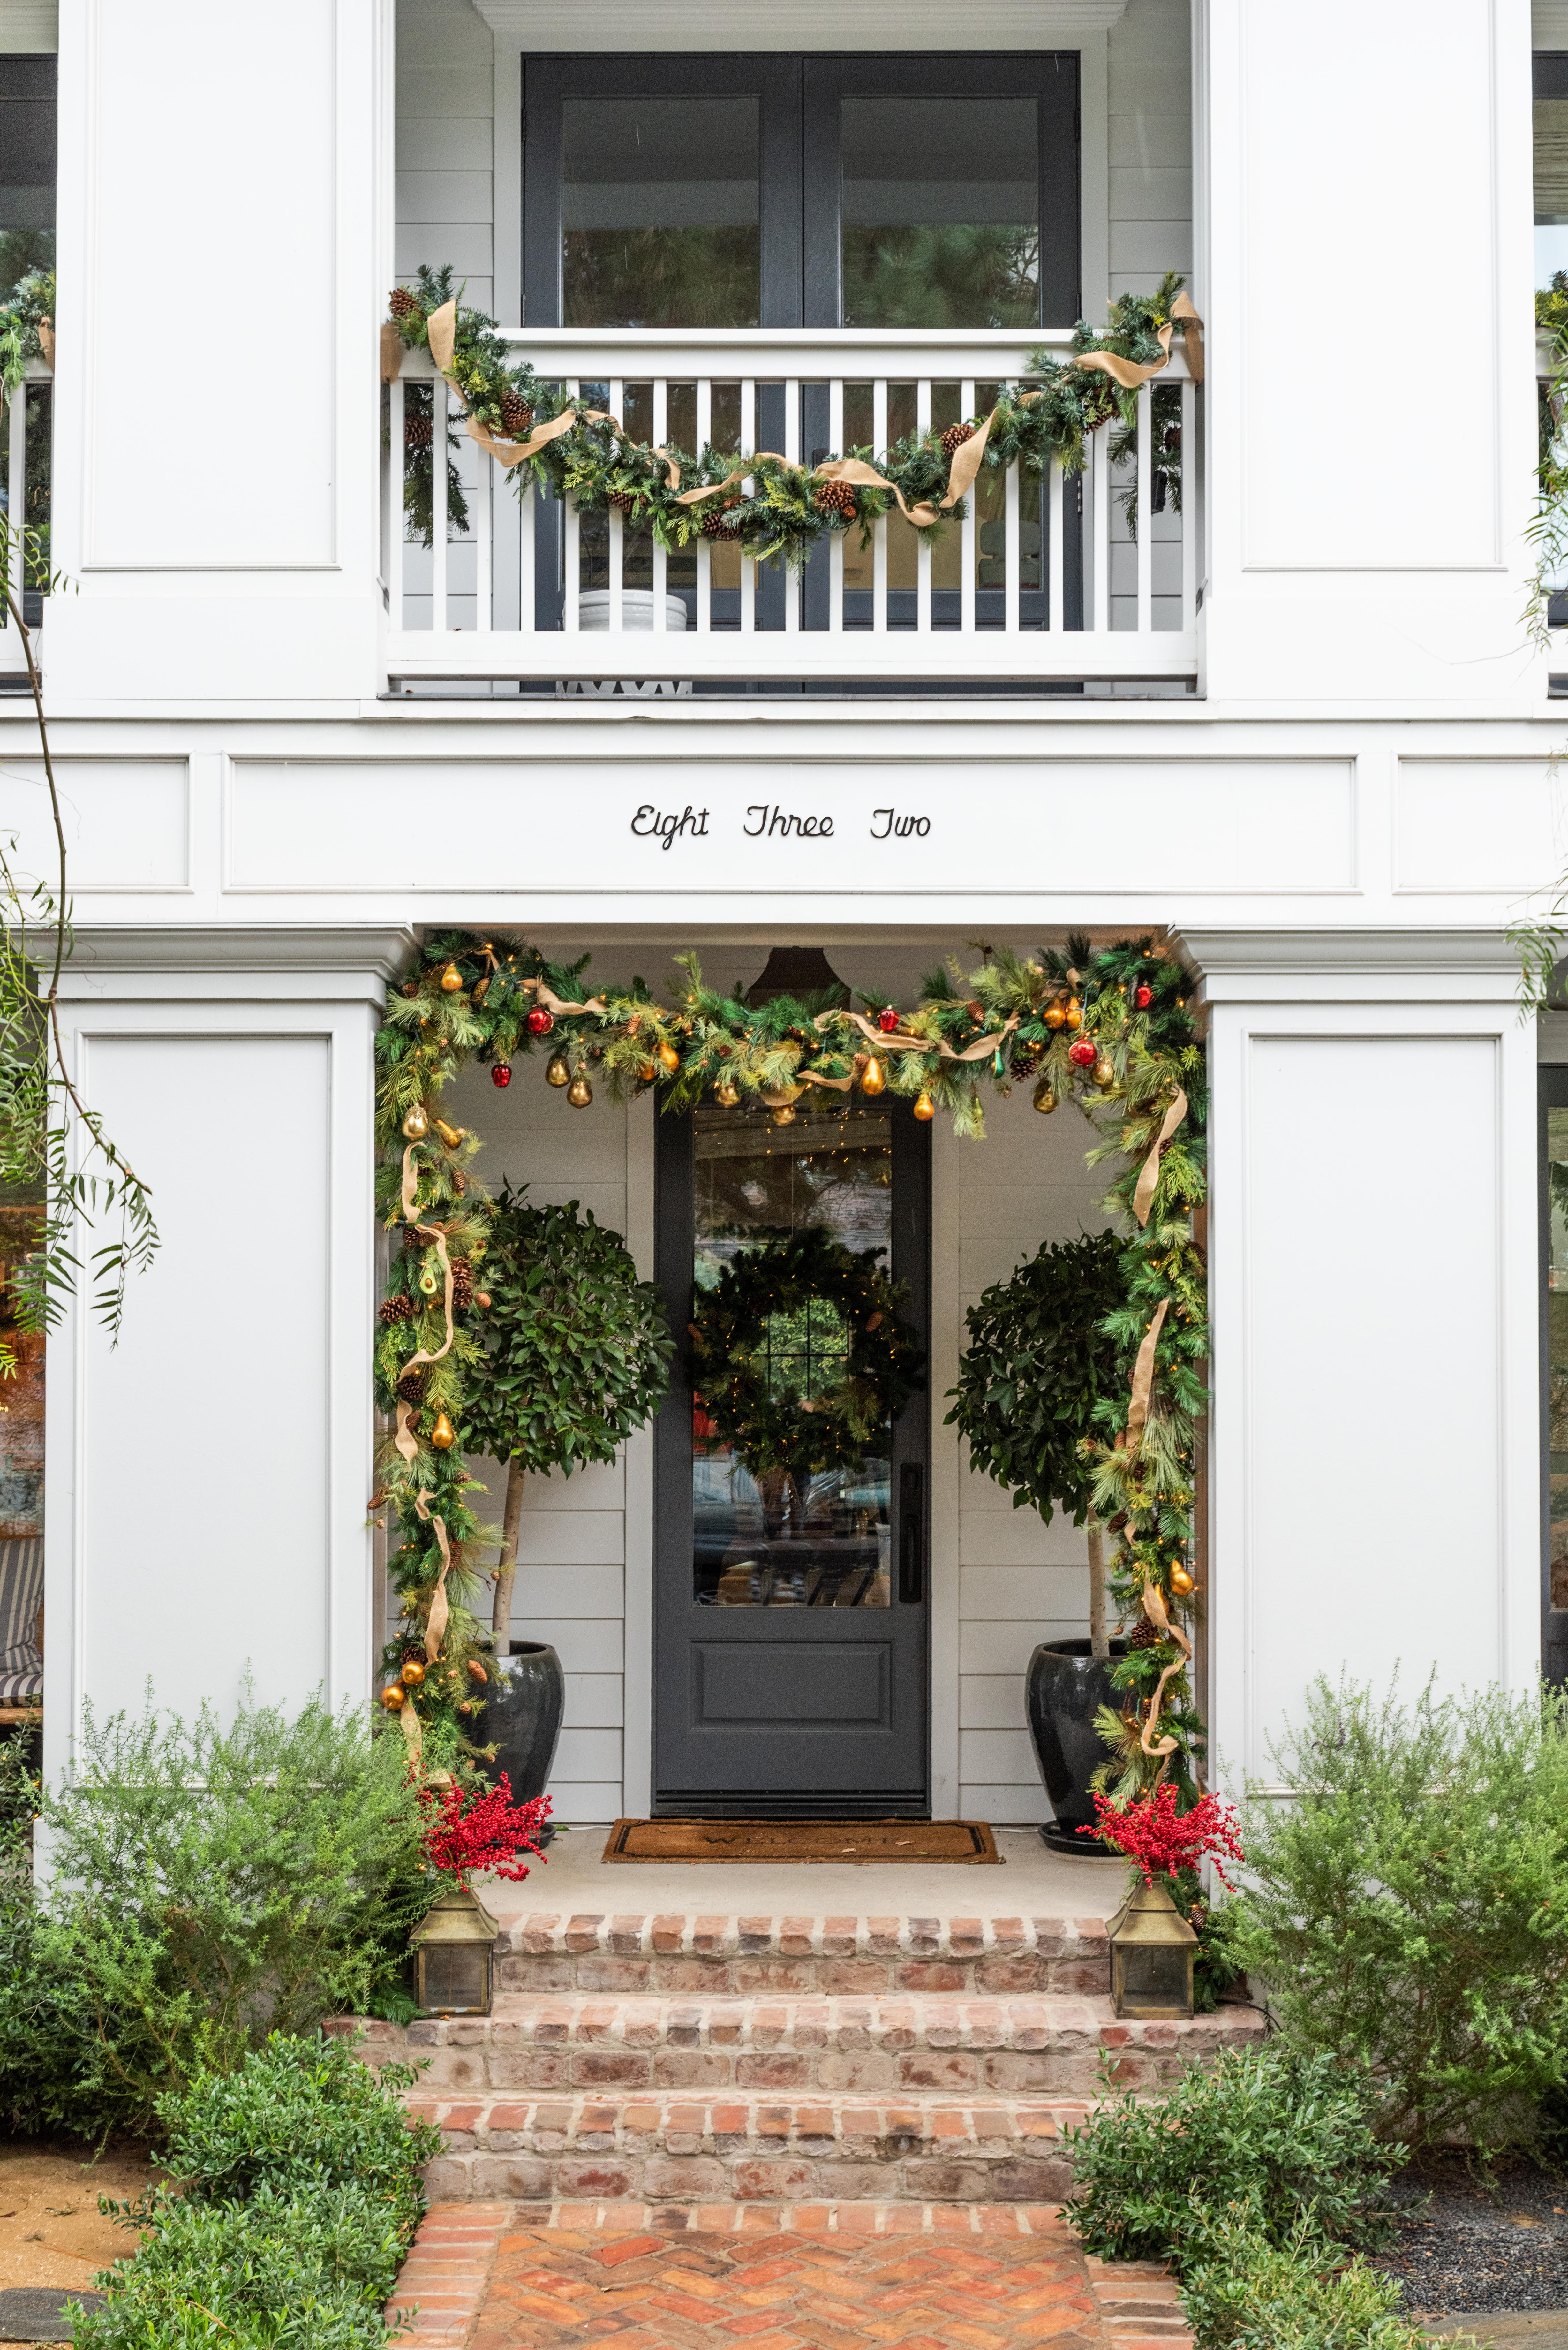 5 Unexpected Places To Add Holiday Decor To Your Home Gray Malin